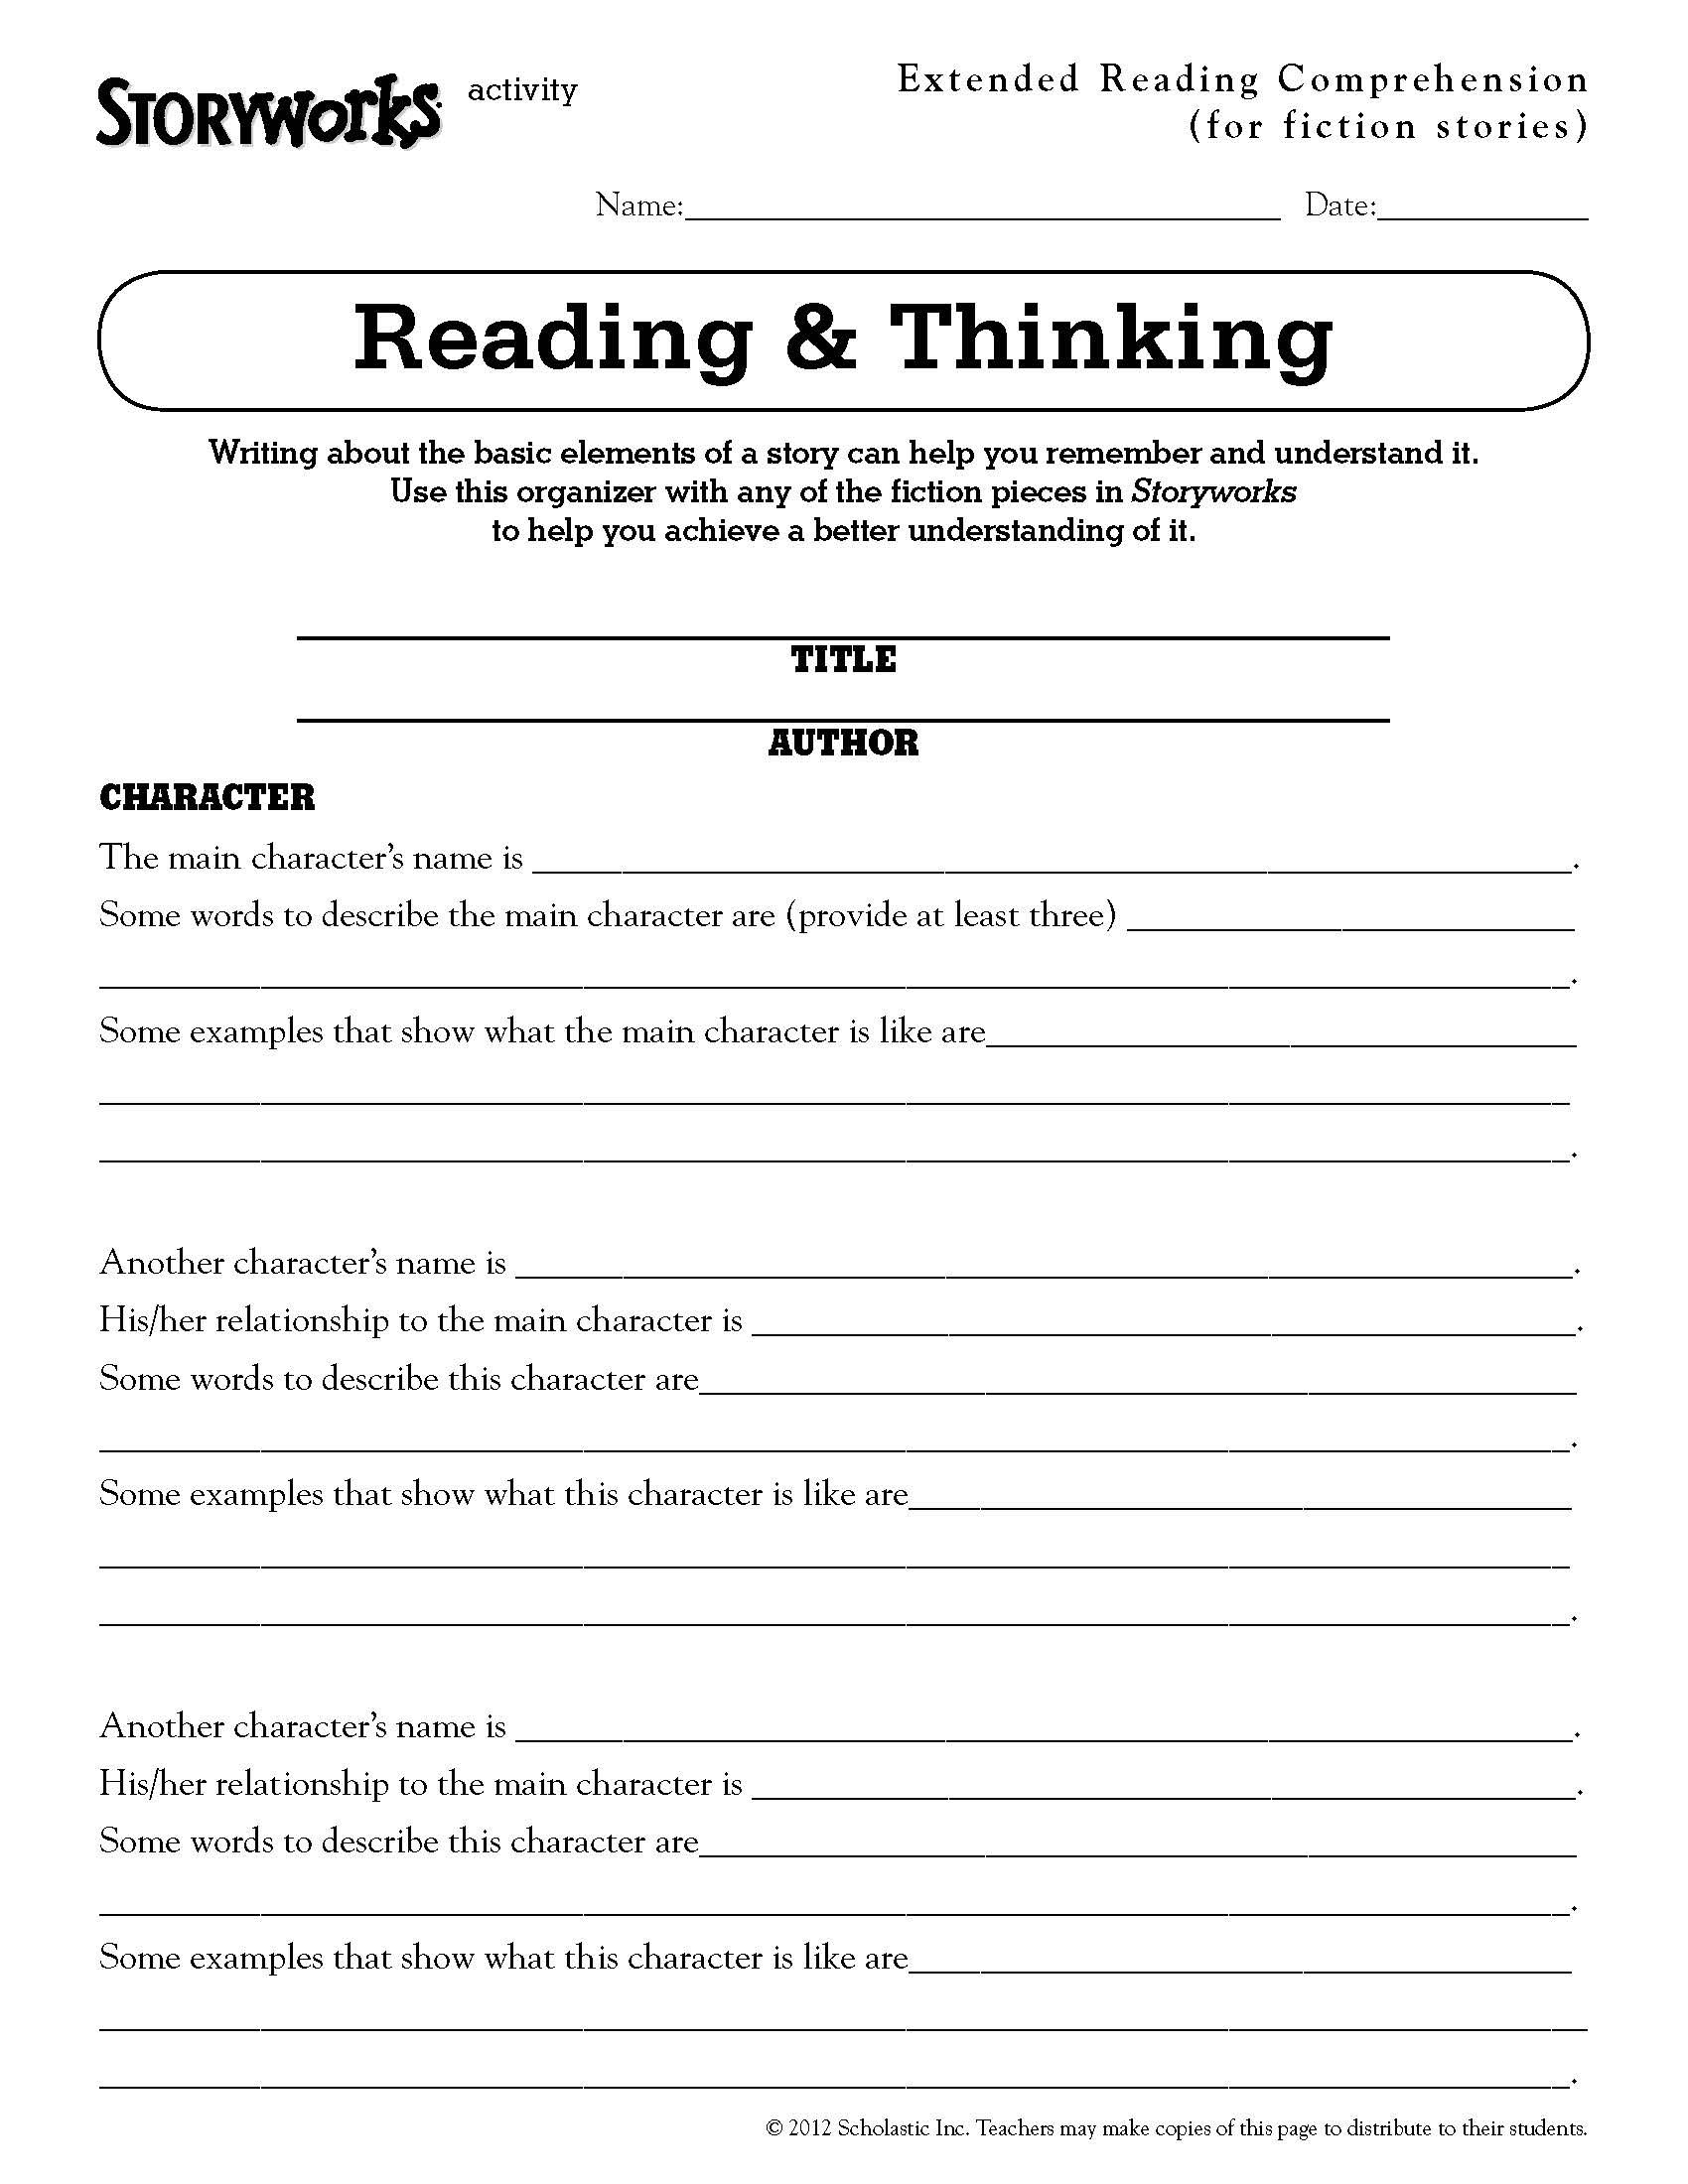 Extended Reading Comprehension Activity For Fiction